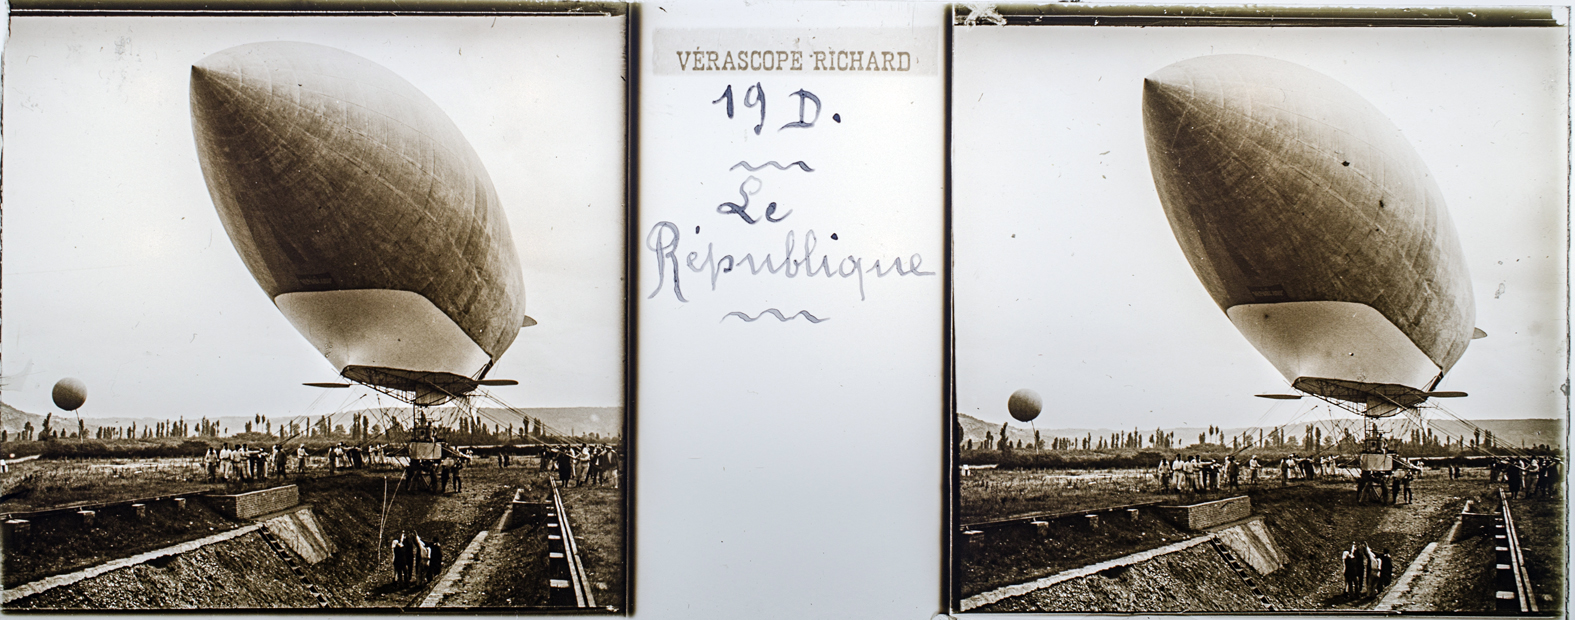 El dirigible République. Verascope Richard, hacia 1910. © Herederos F. Avial.